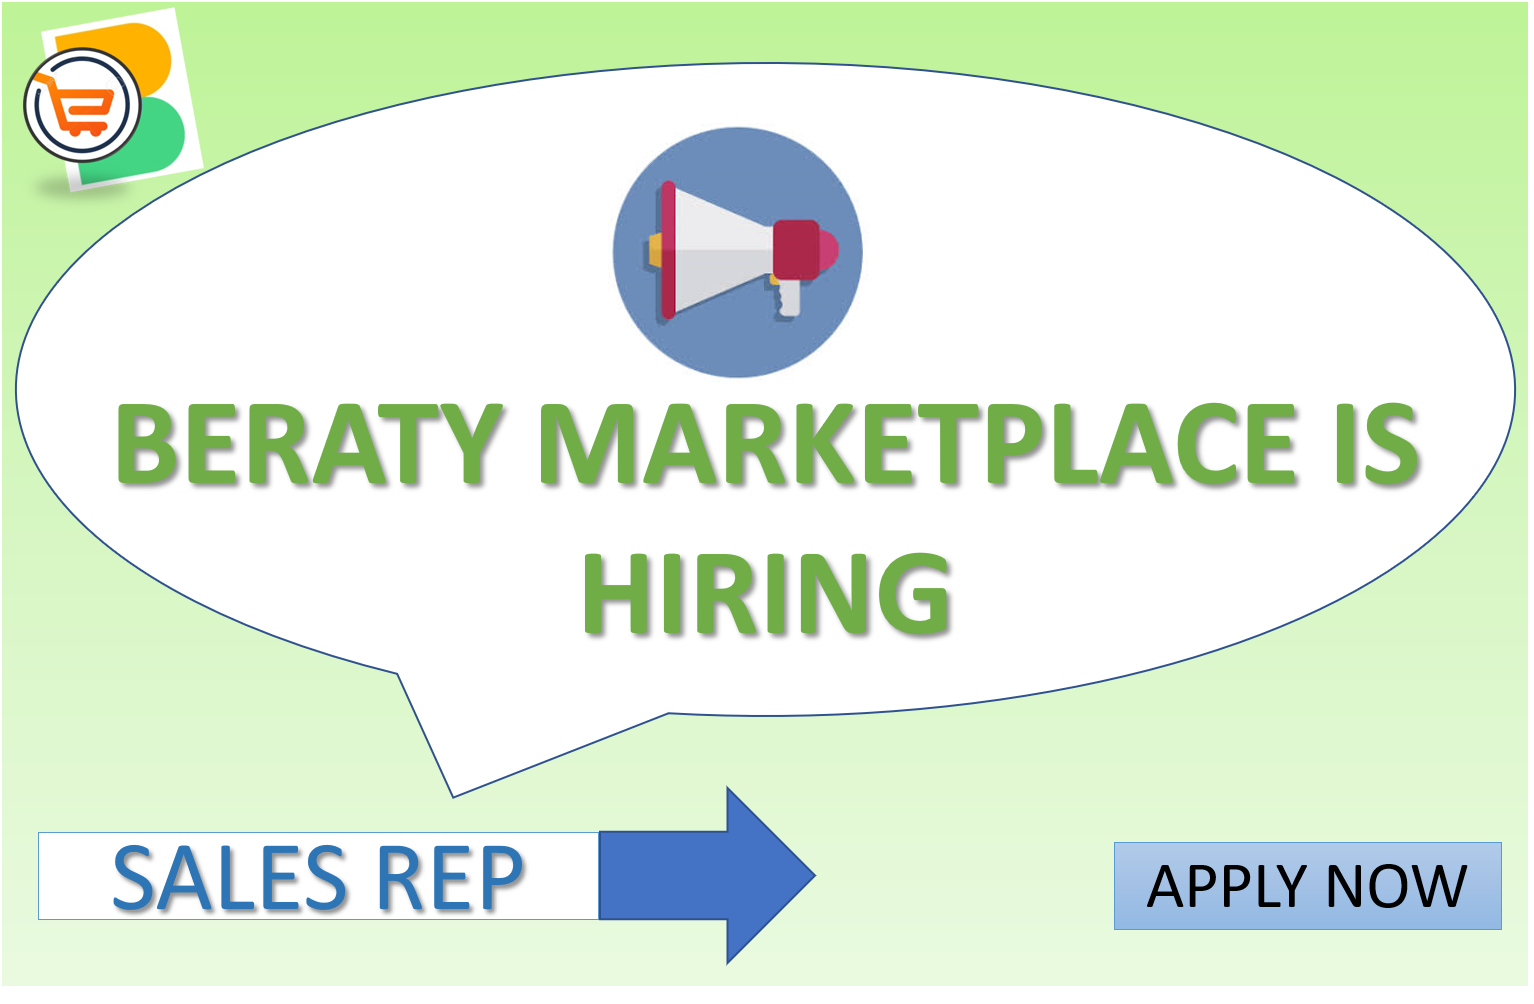 Beraty is hiring